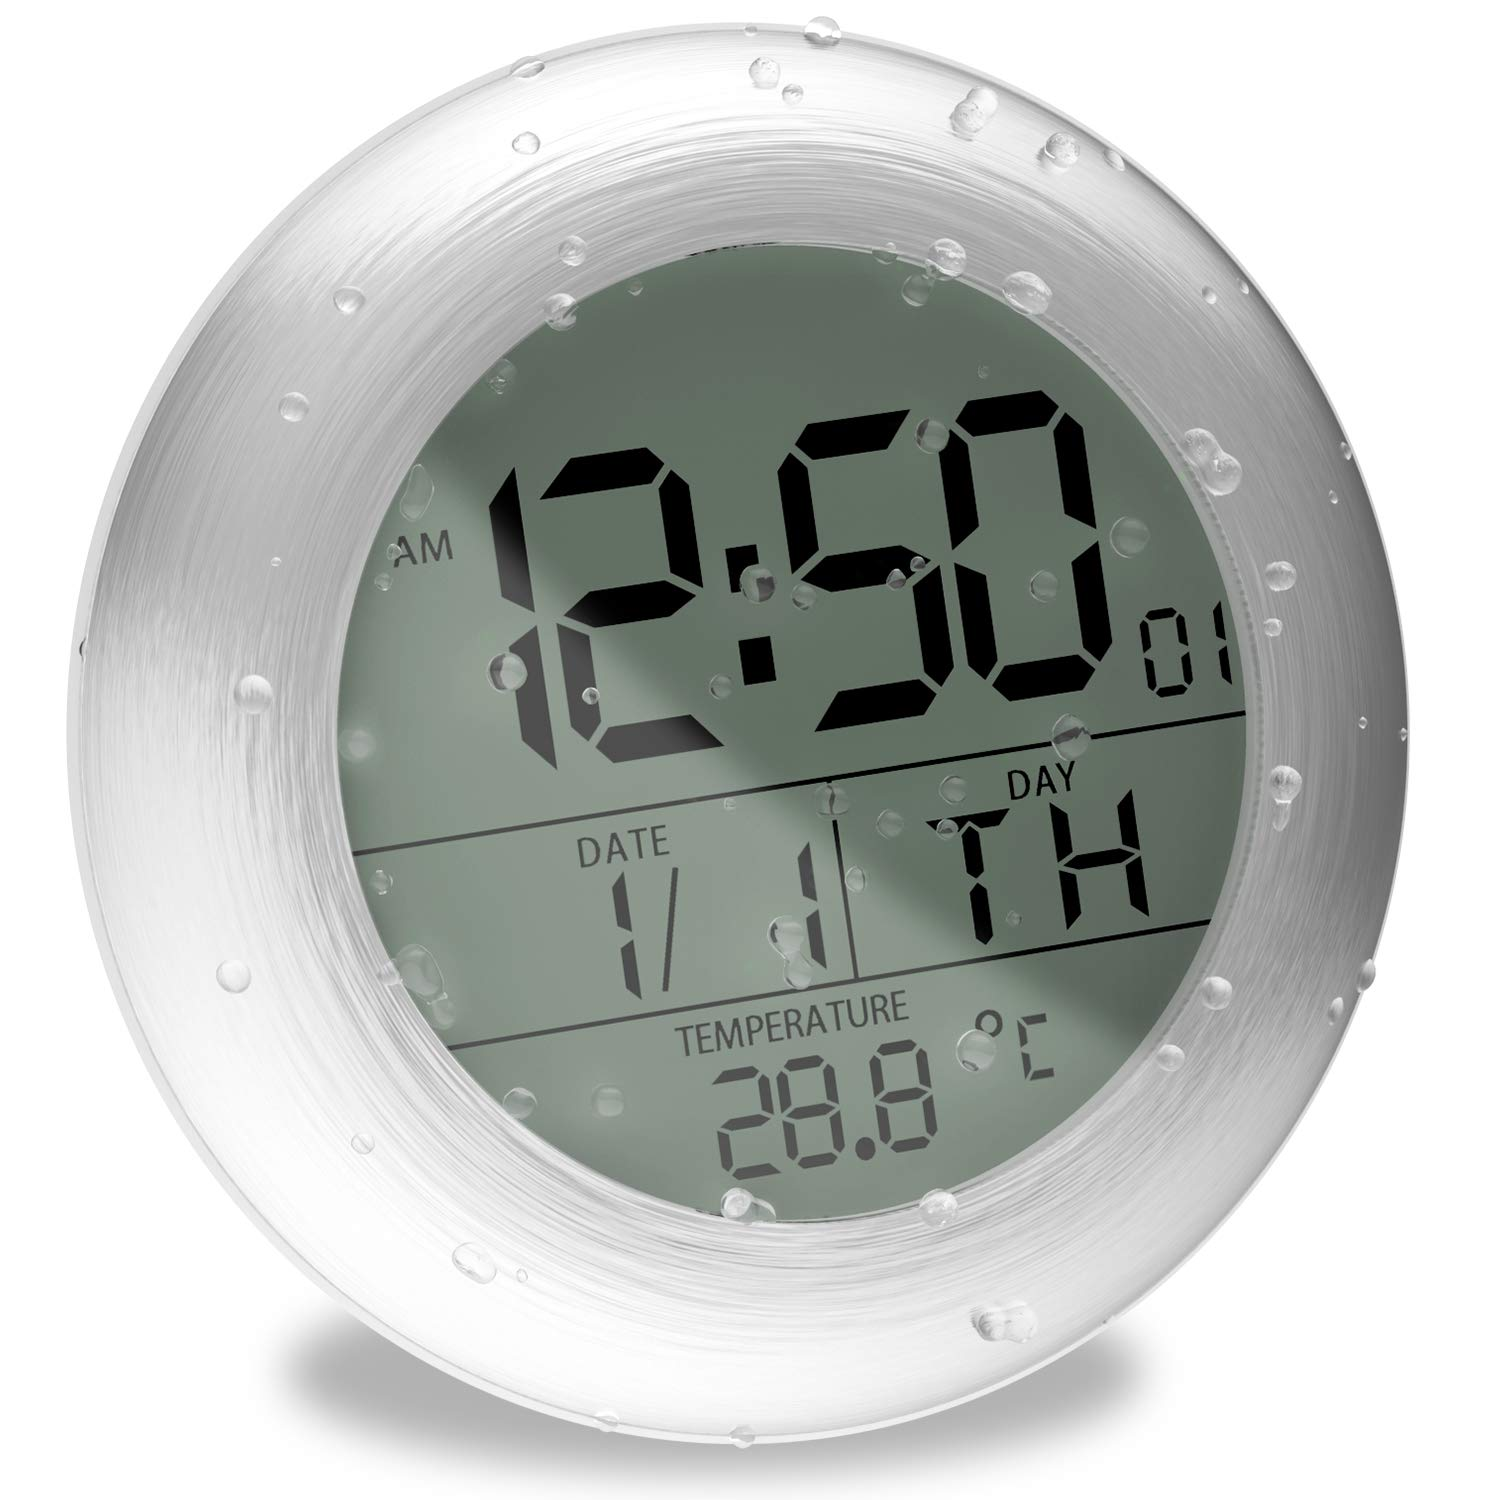 TOENNESEN Fashion Waterproof Bathroom Wall Clock Suction Cup Shower Clock with LCD Display, Date and Temperature (Round, Silver) M0006STH